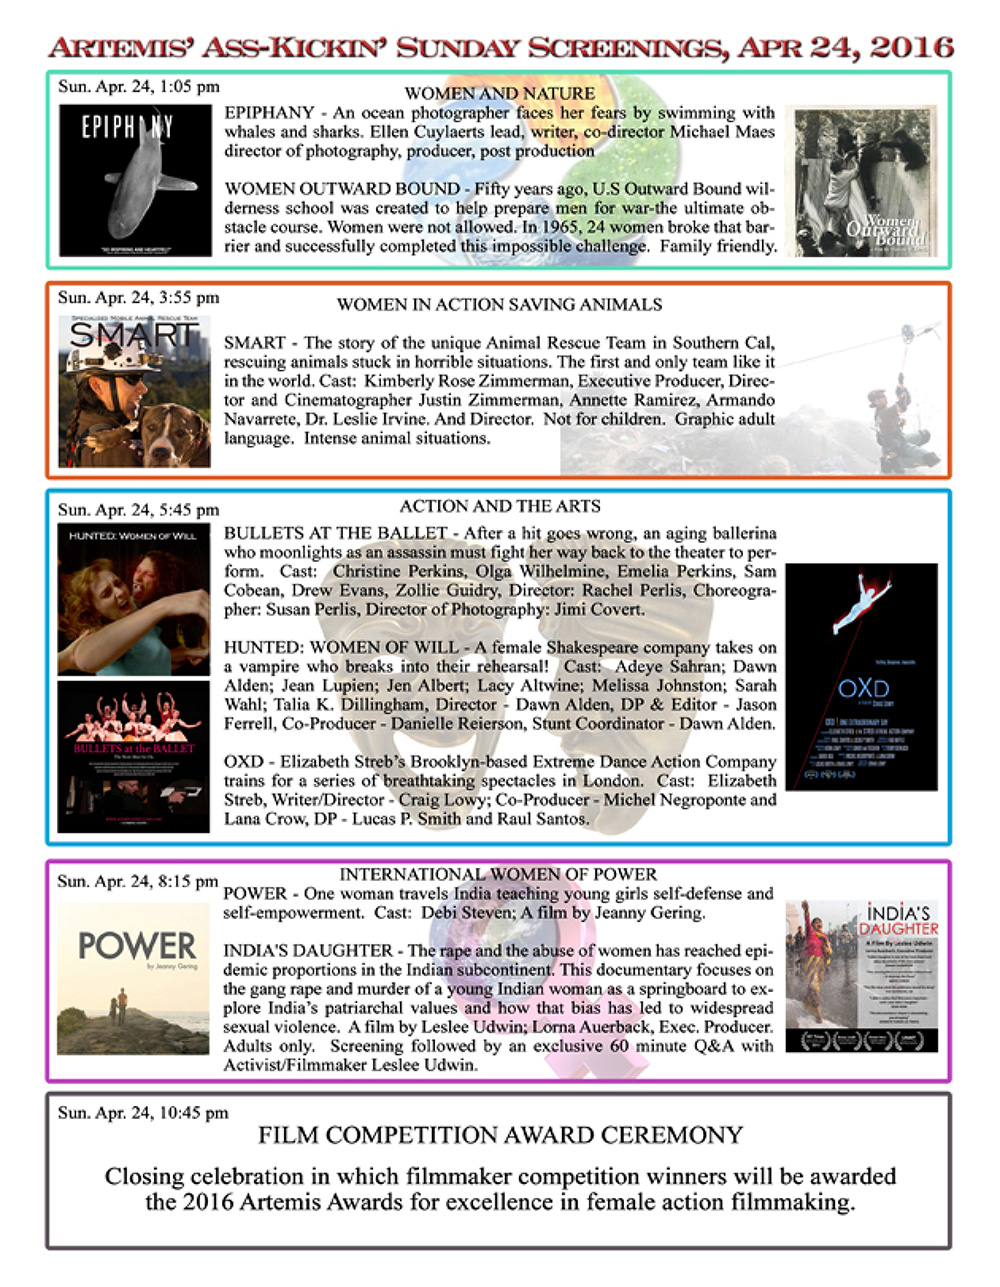 Artemis Women in Action Film Festival 2016 Program page 9